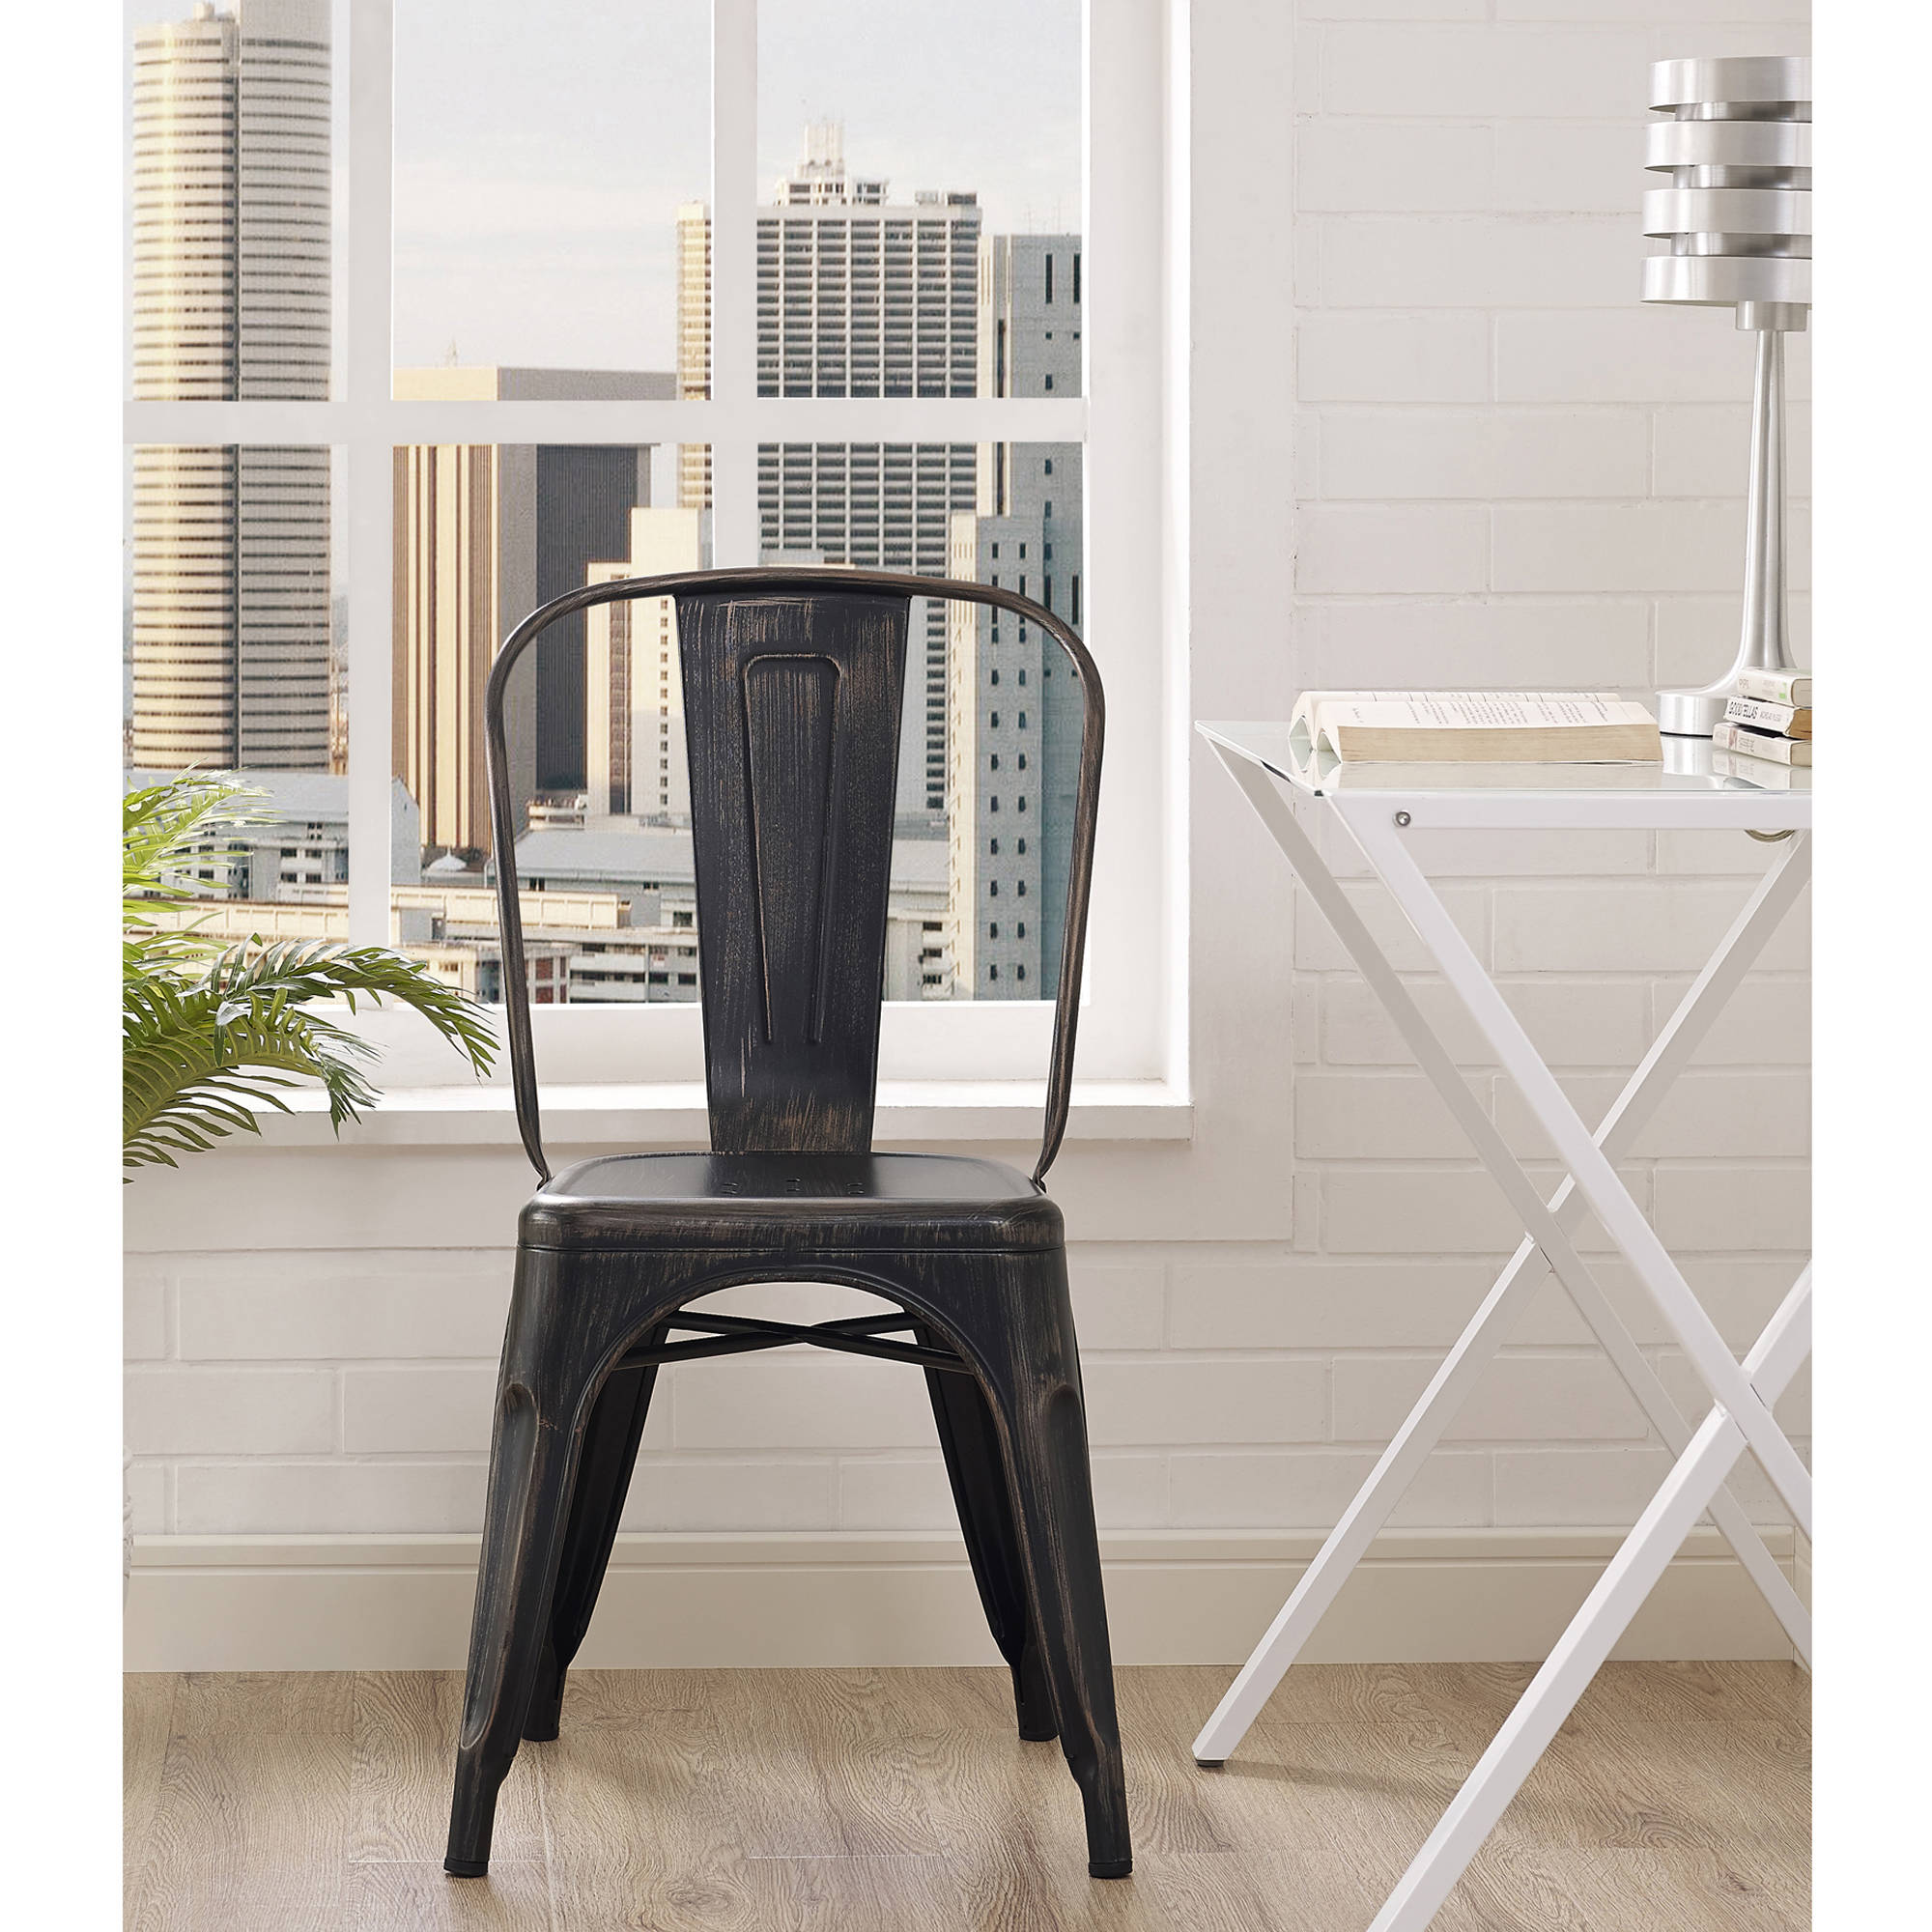 metal bistro chairs pittsburgh steelers chair antiqued stack able assorted colors ebay details about